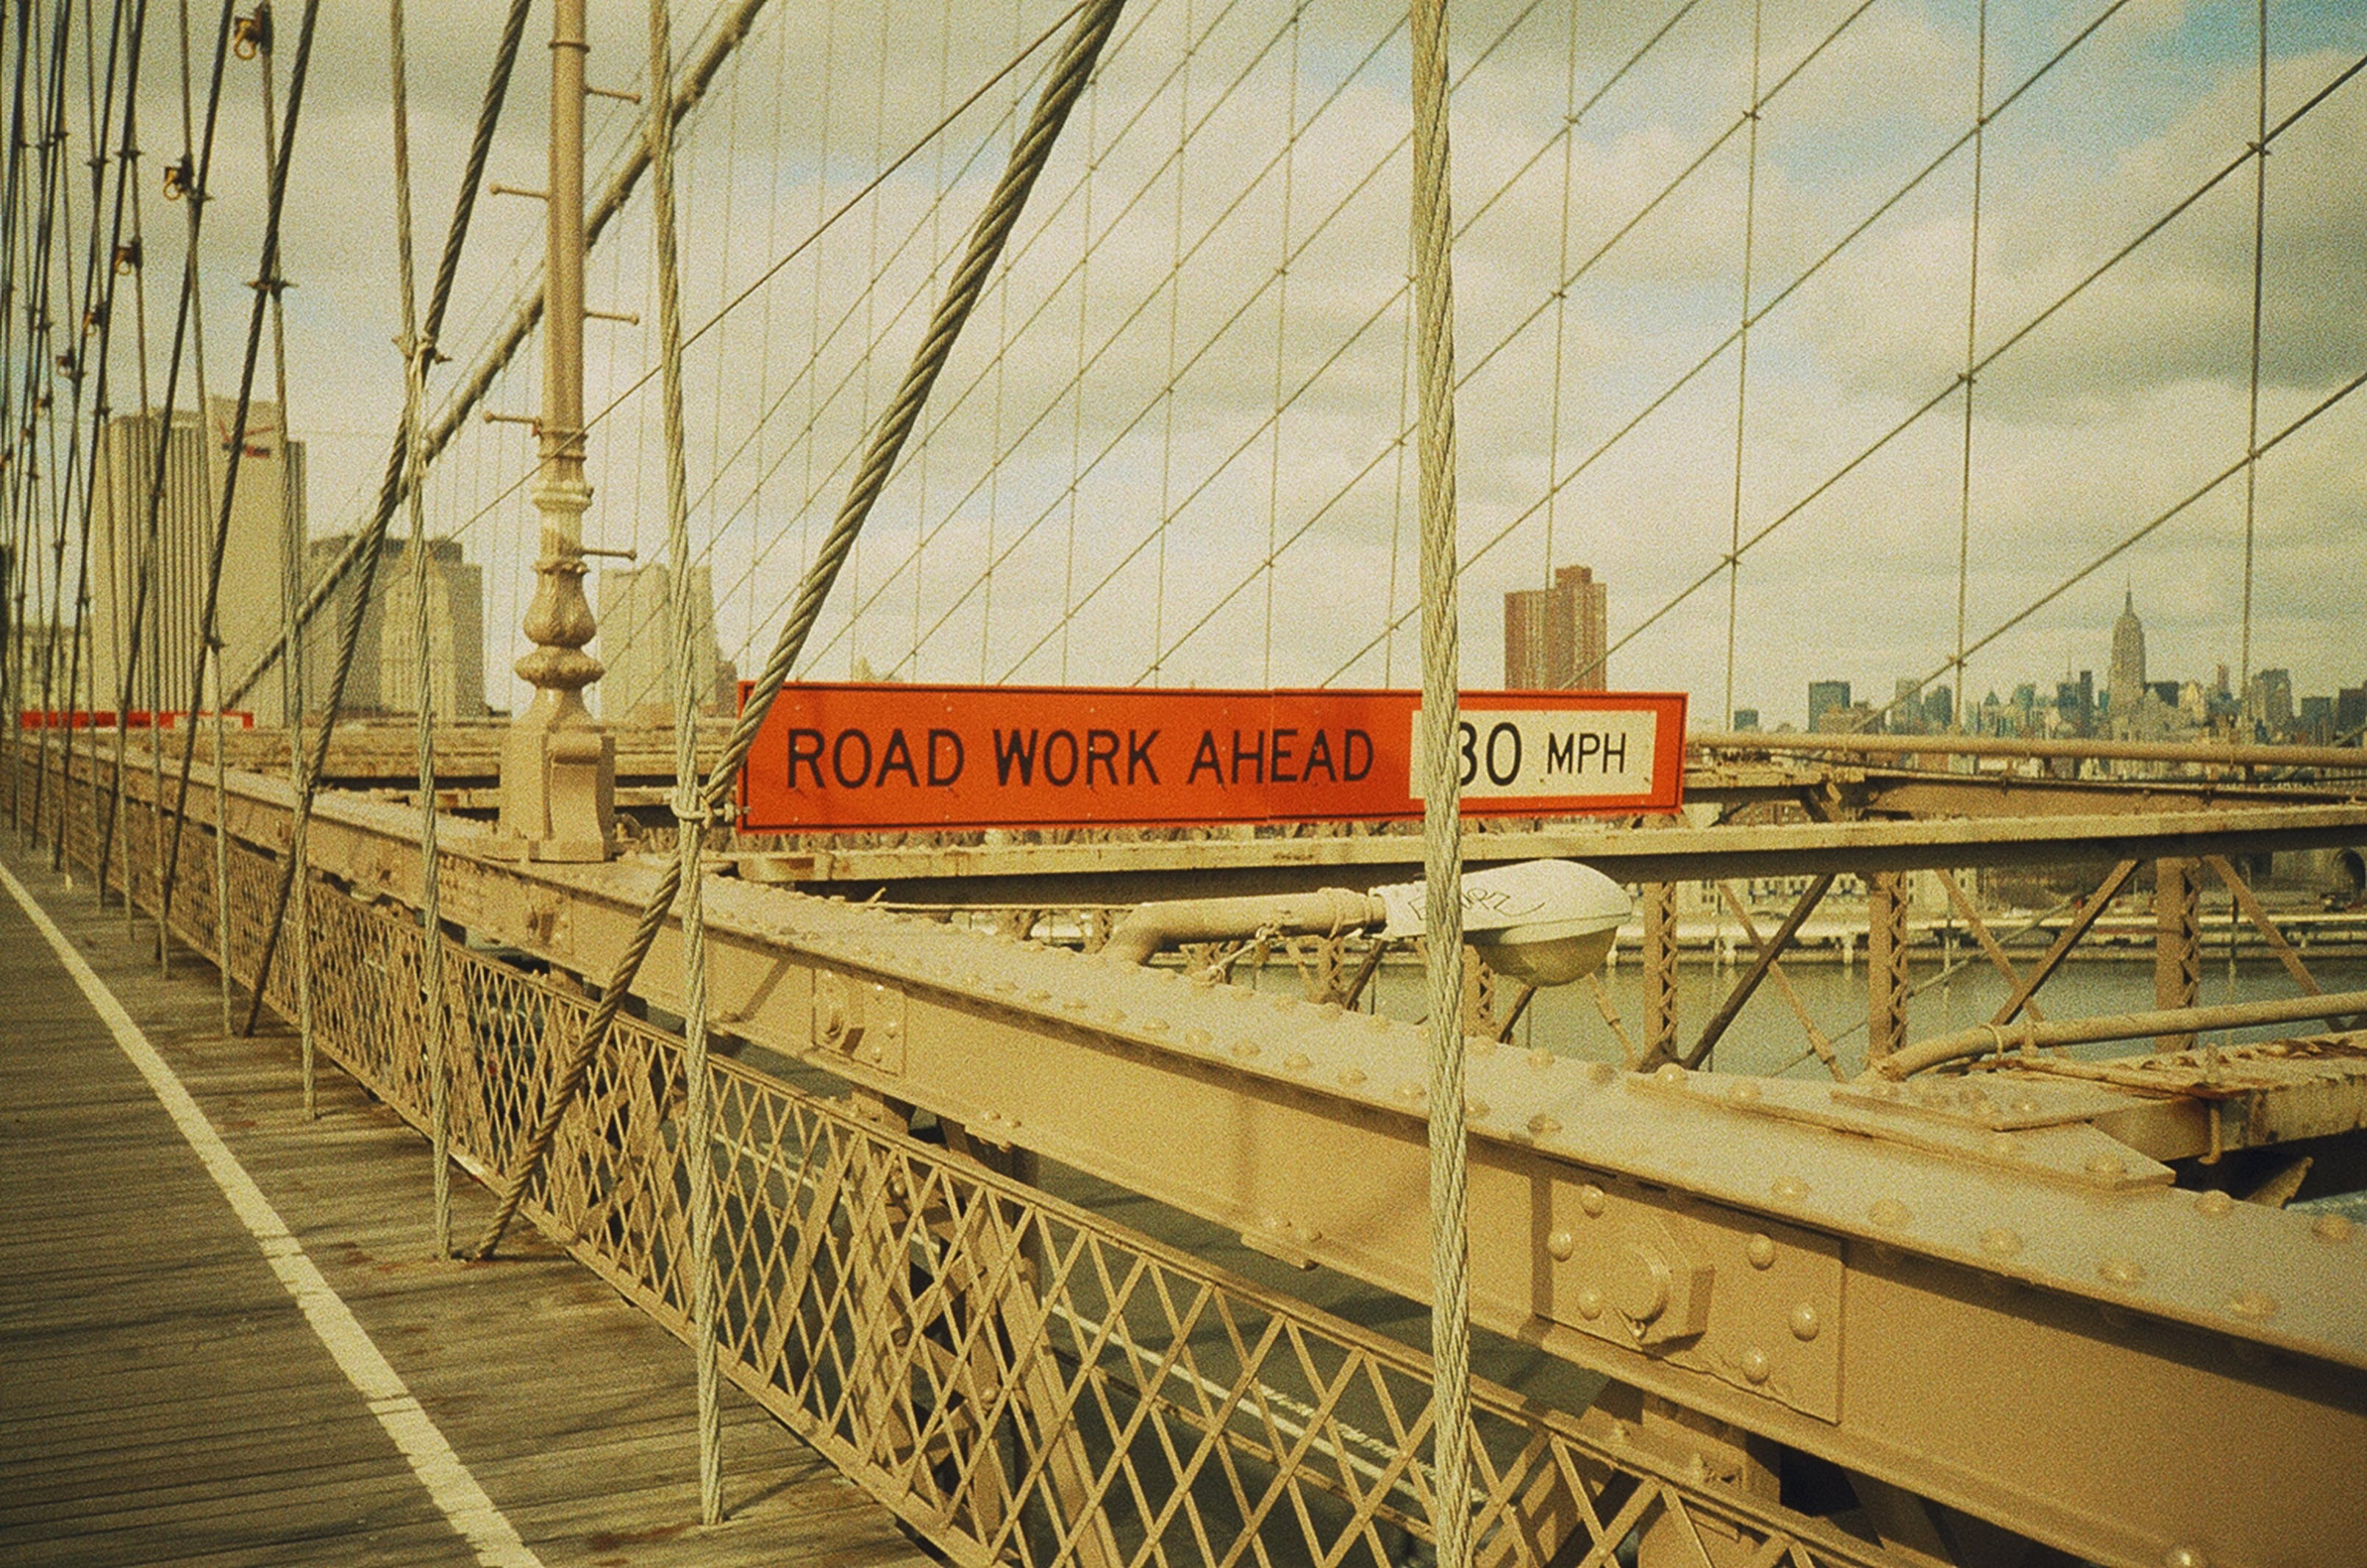 Red and White Signage With Road Work Ahead Text